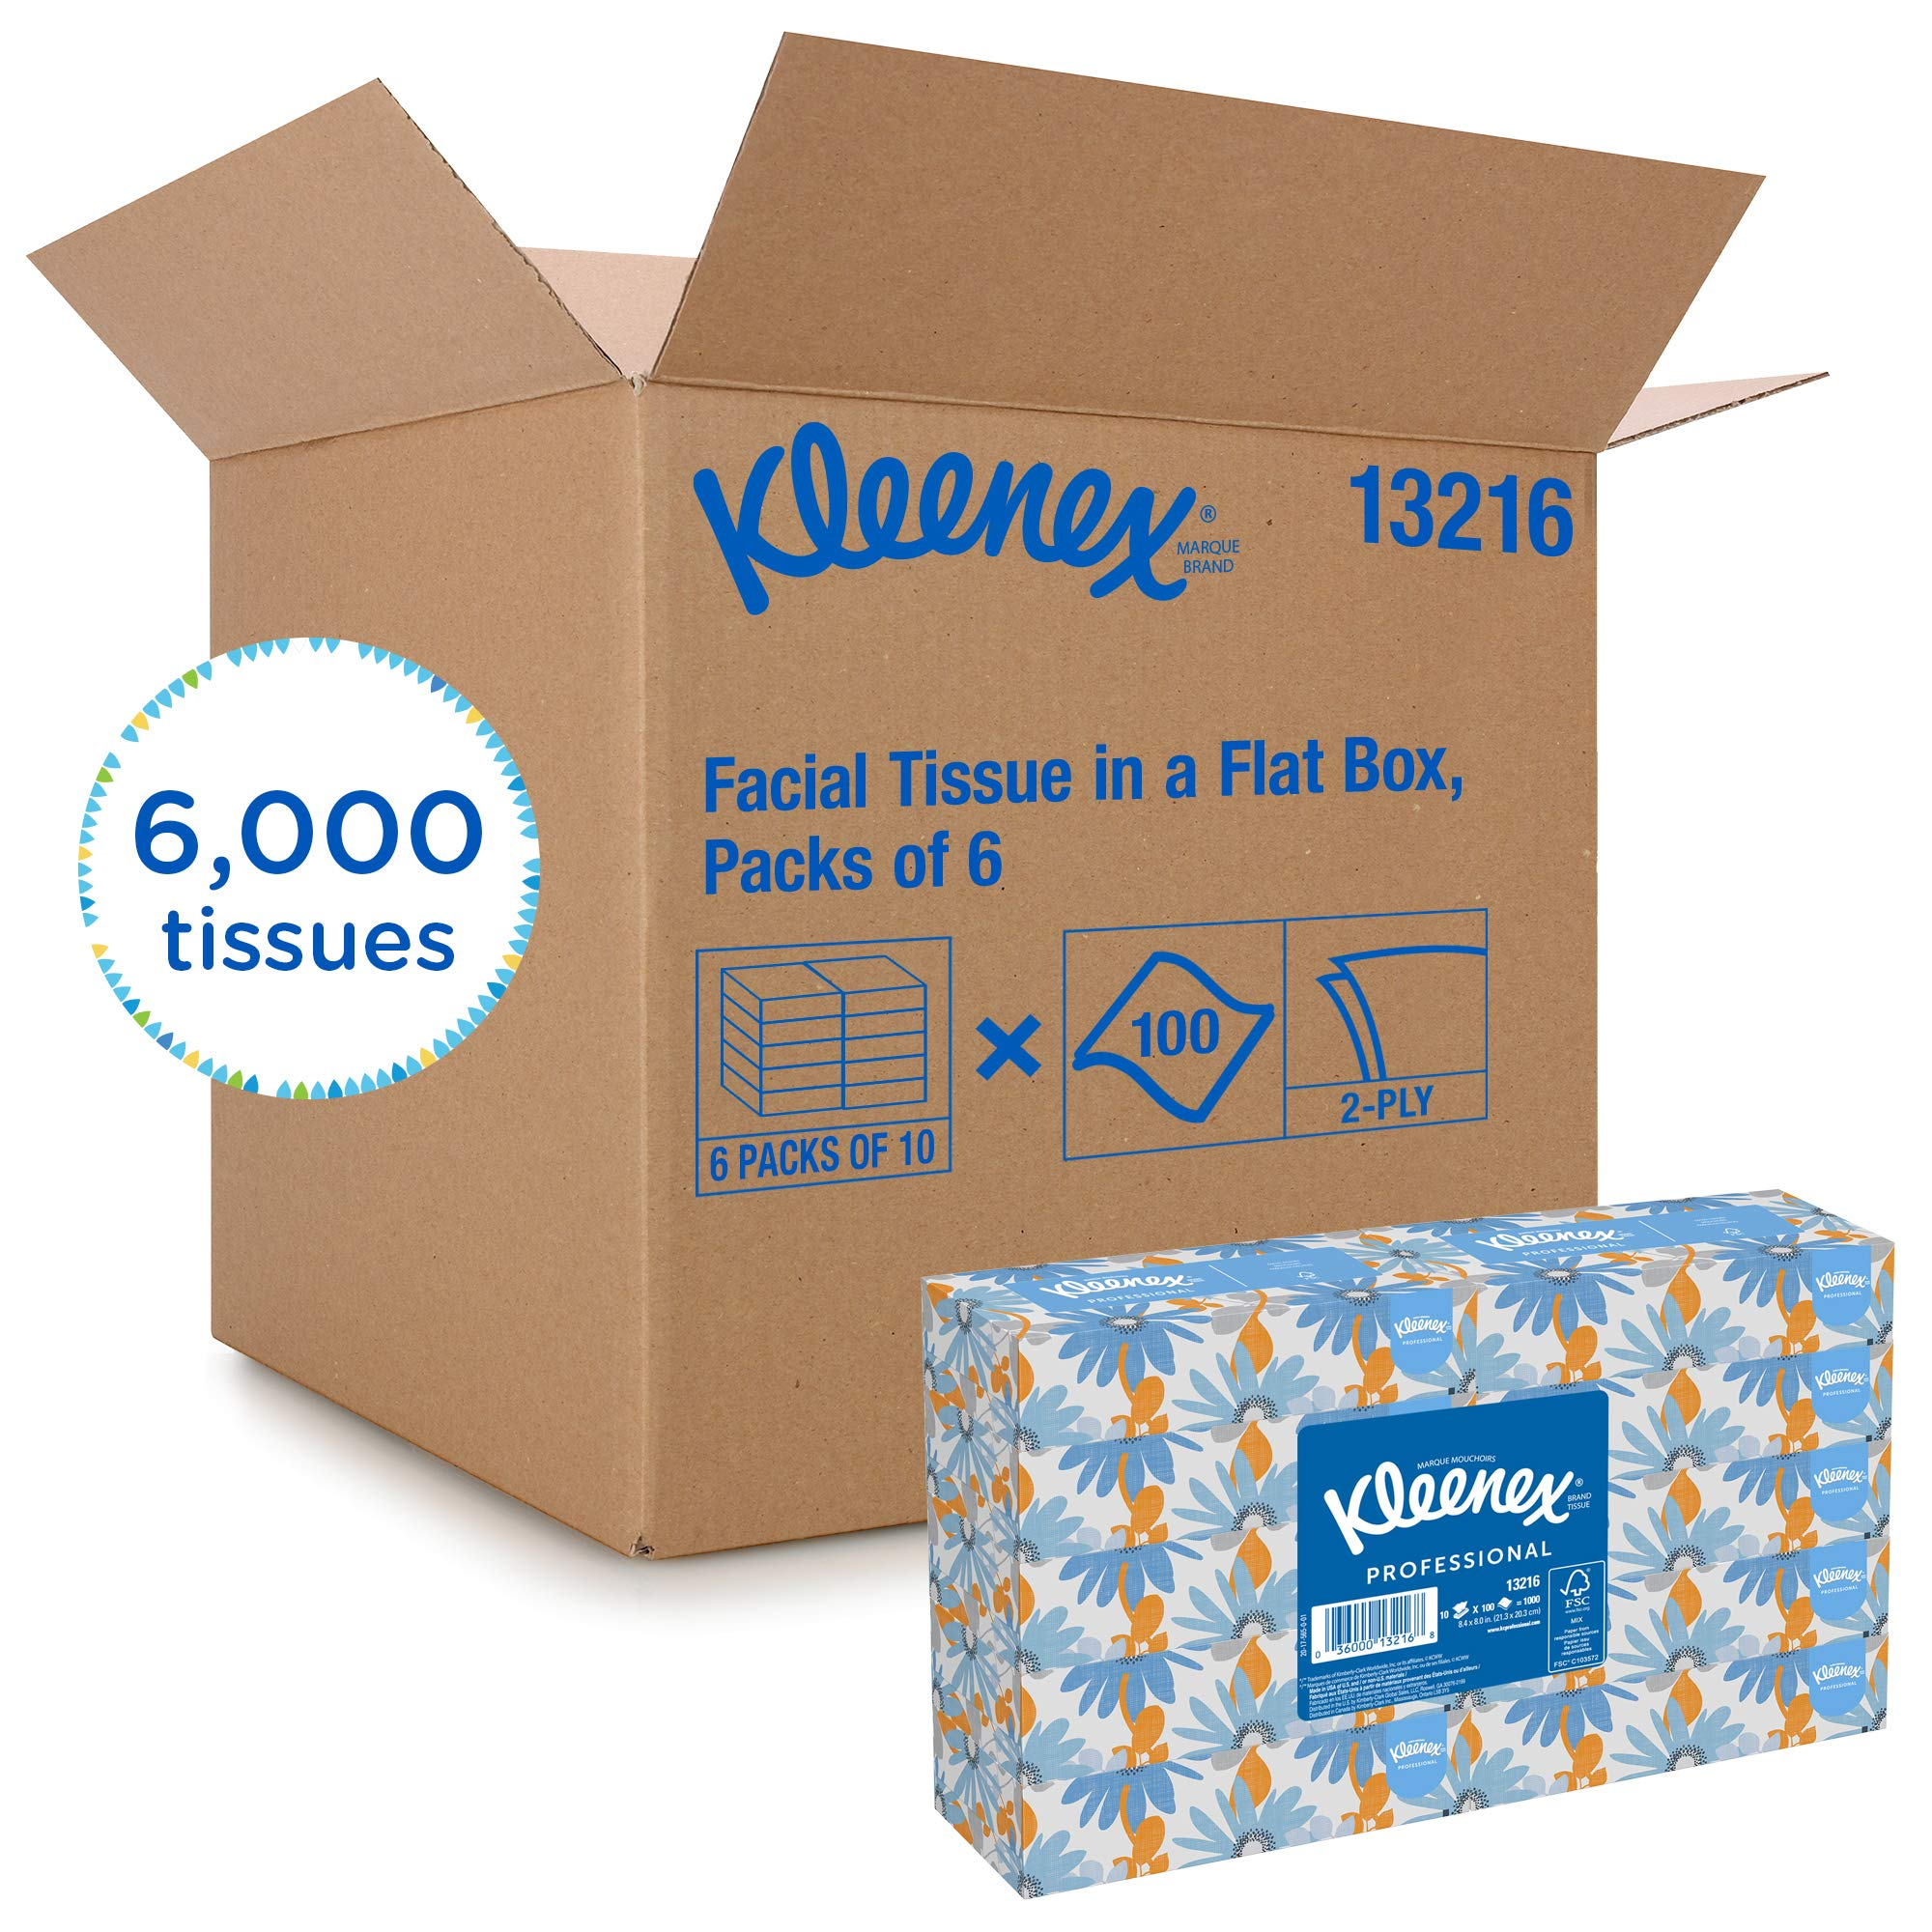 Kleenex Professional Facial Tissue for Business (13216), Flat Tissue Boxes, 60 Boxes/Case, 100 Tissues/Box by Kimberly-Clark Professional (Image #1)